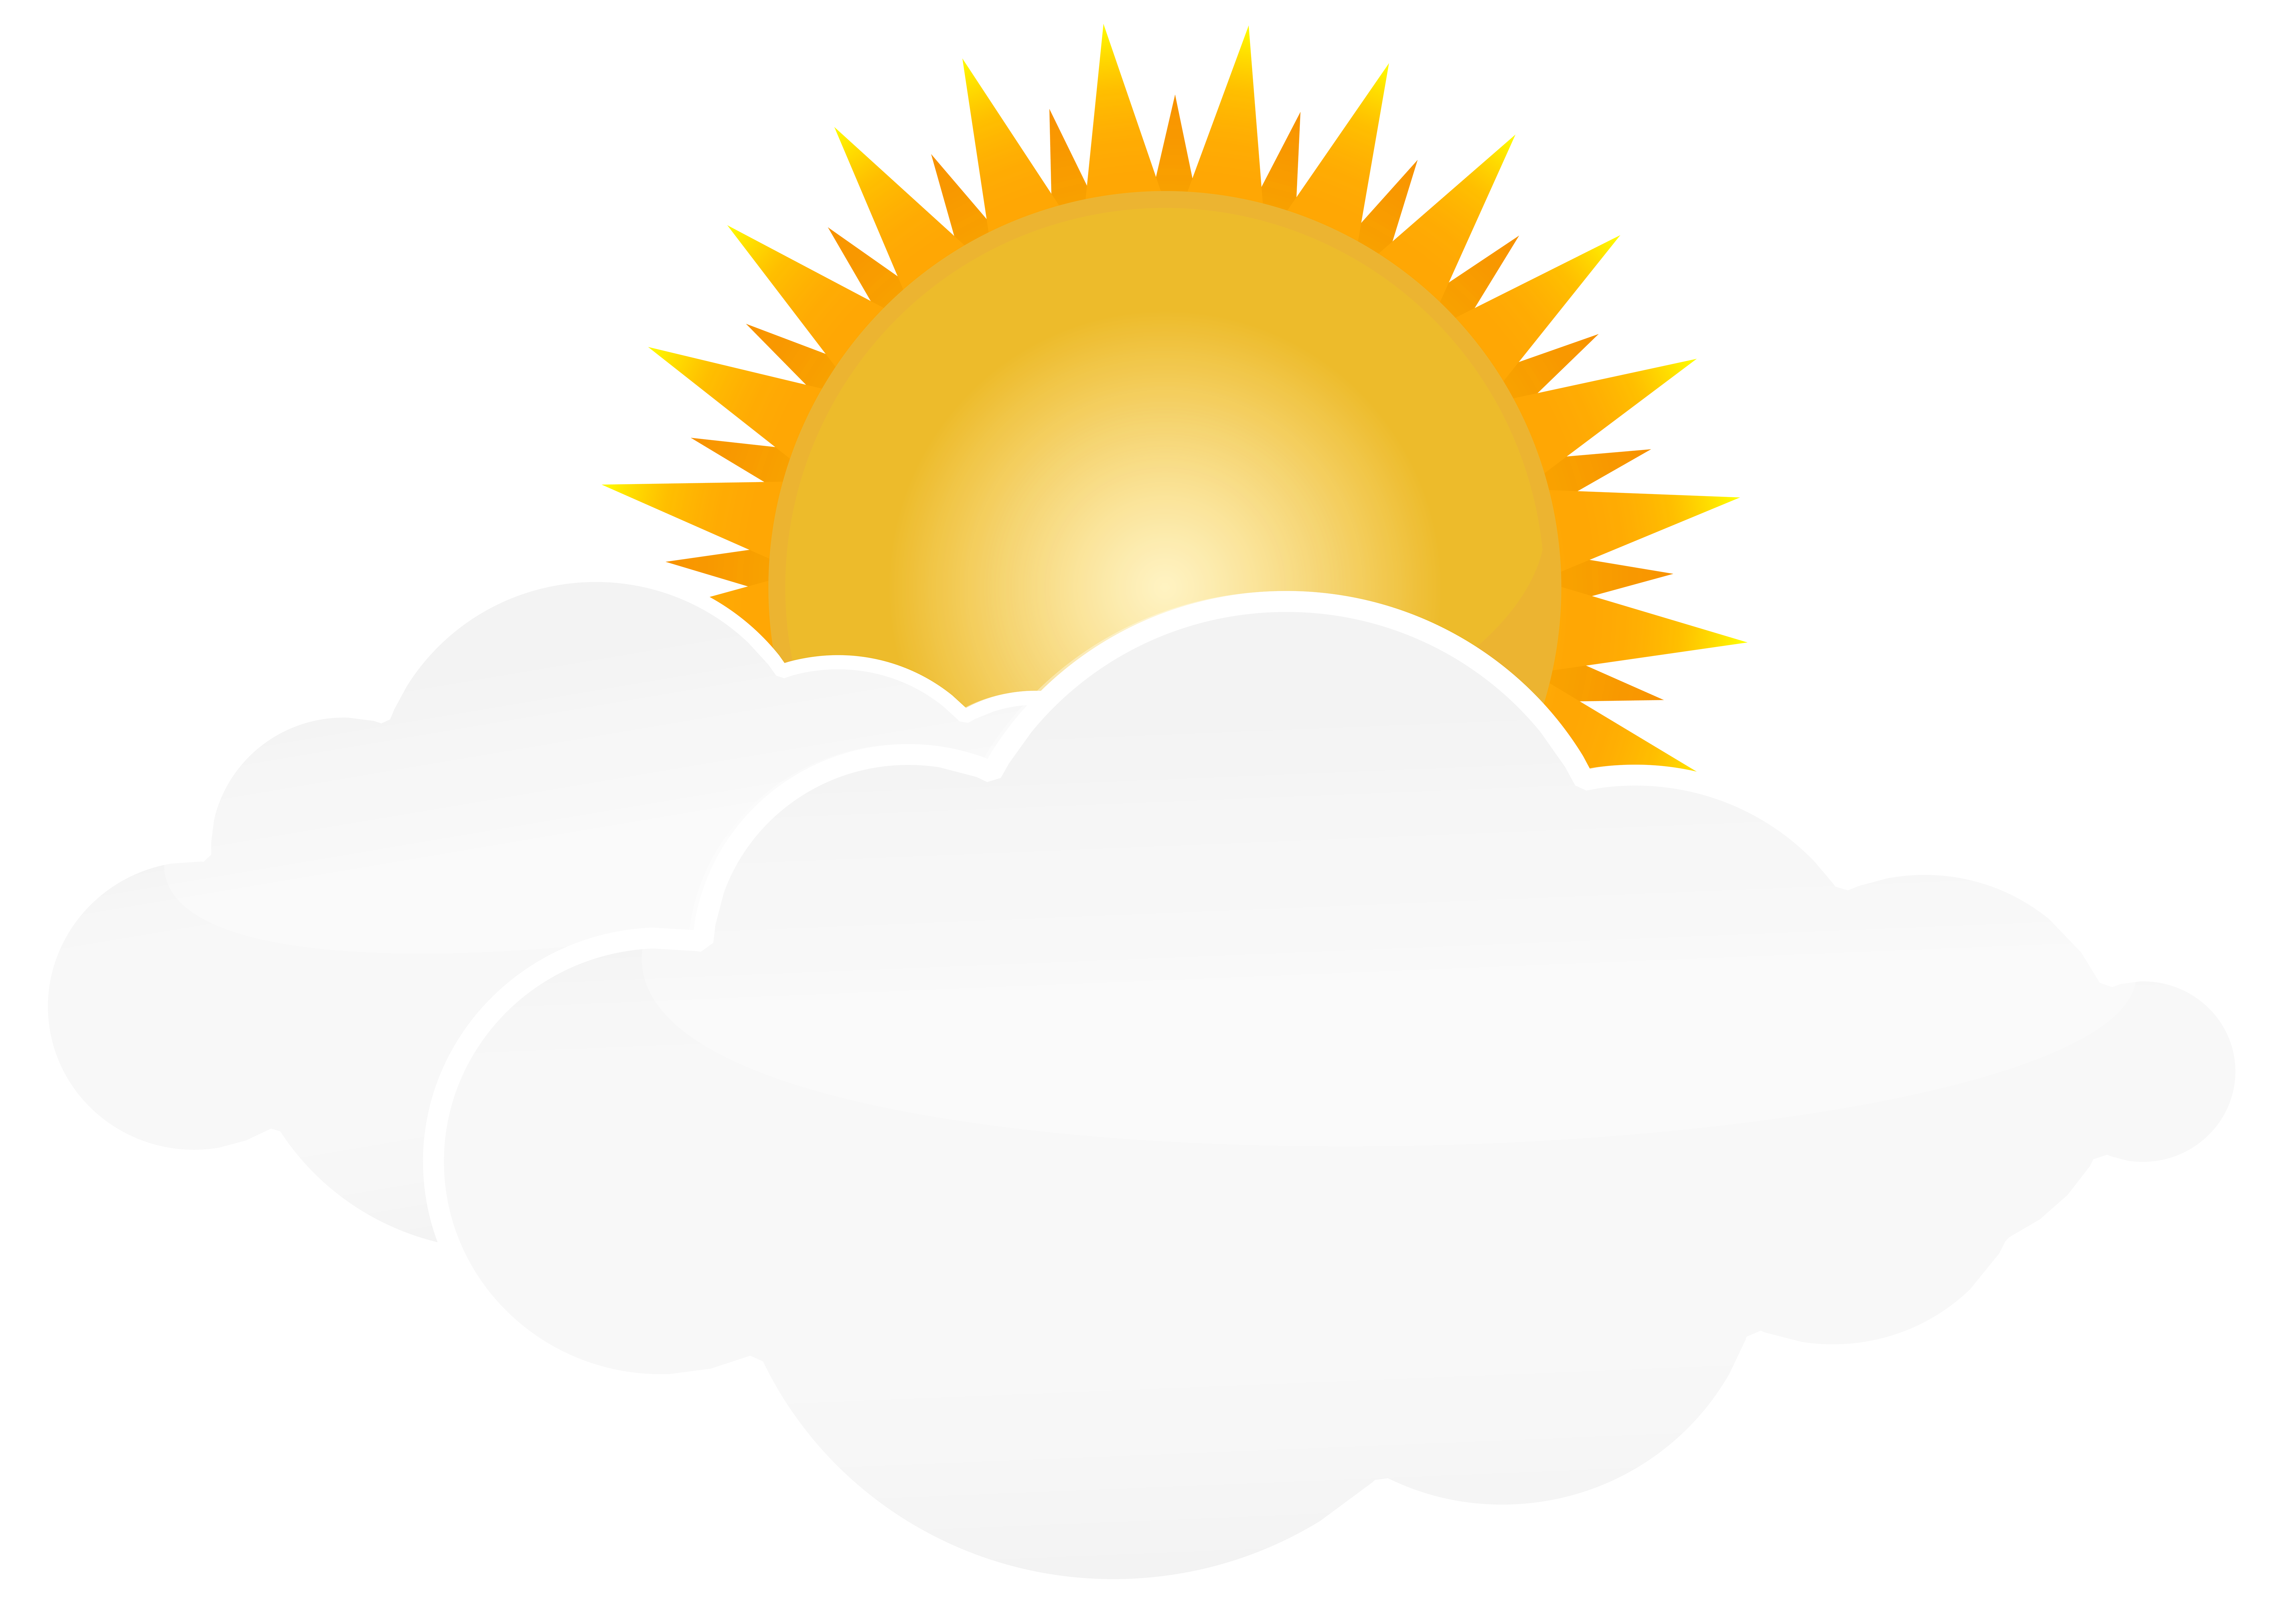 Sun And Clouds Clipart Png Sun And Clouds Cloud Drawing Cloud Illustration